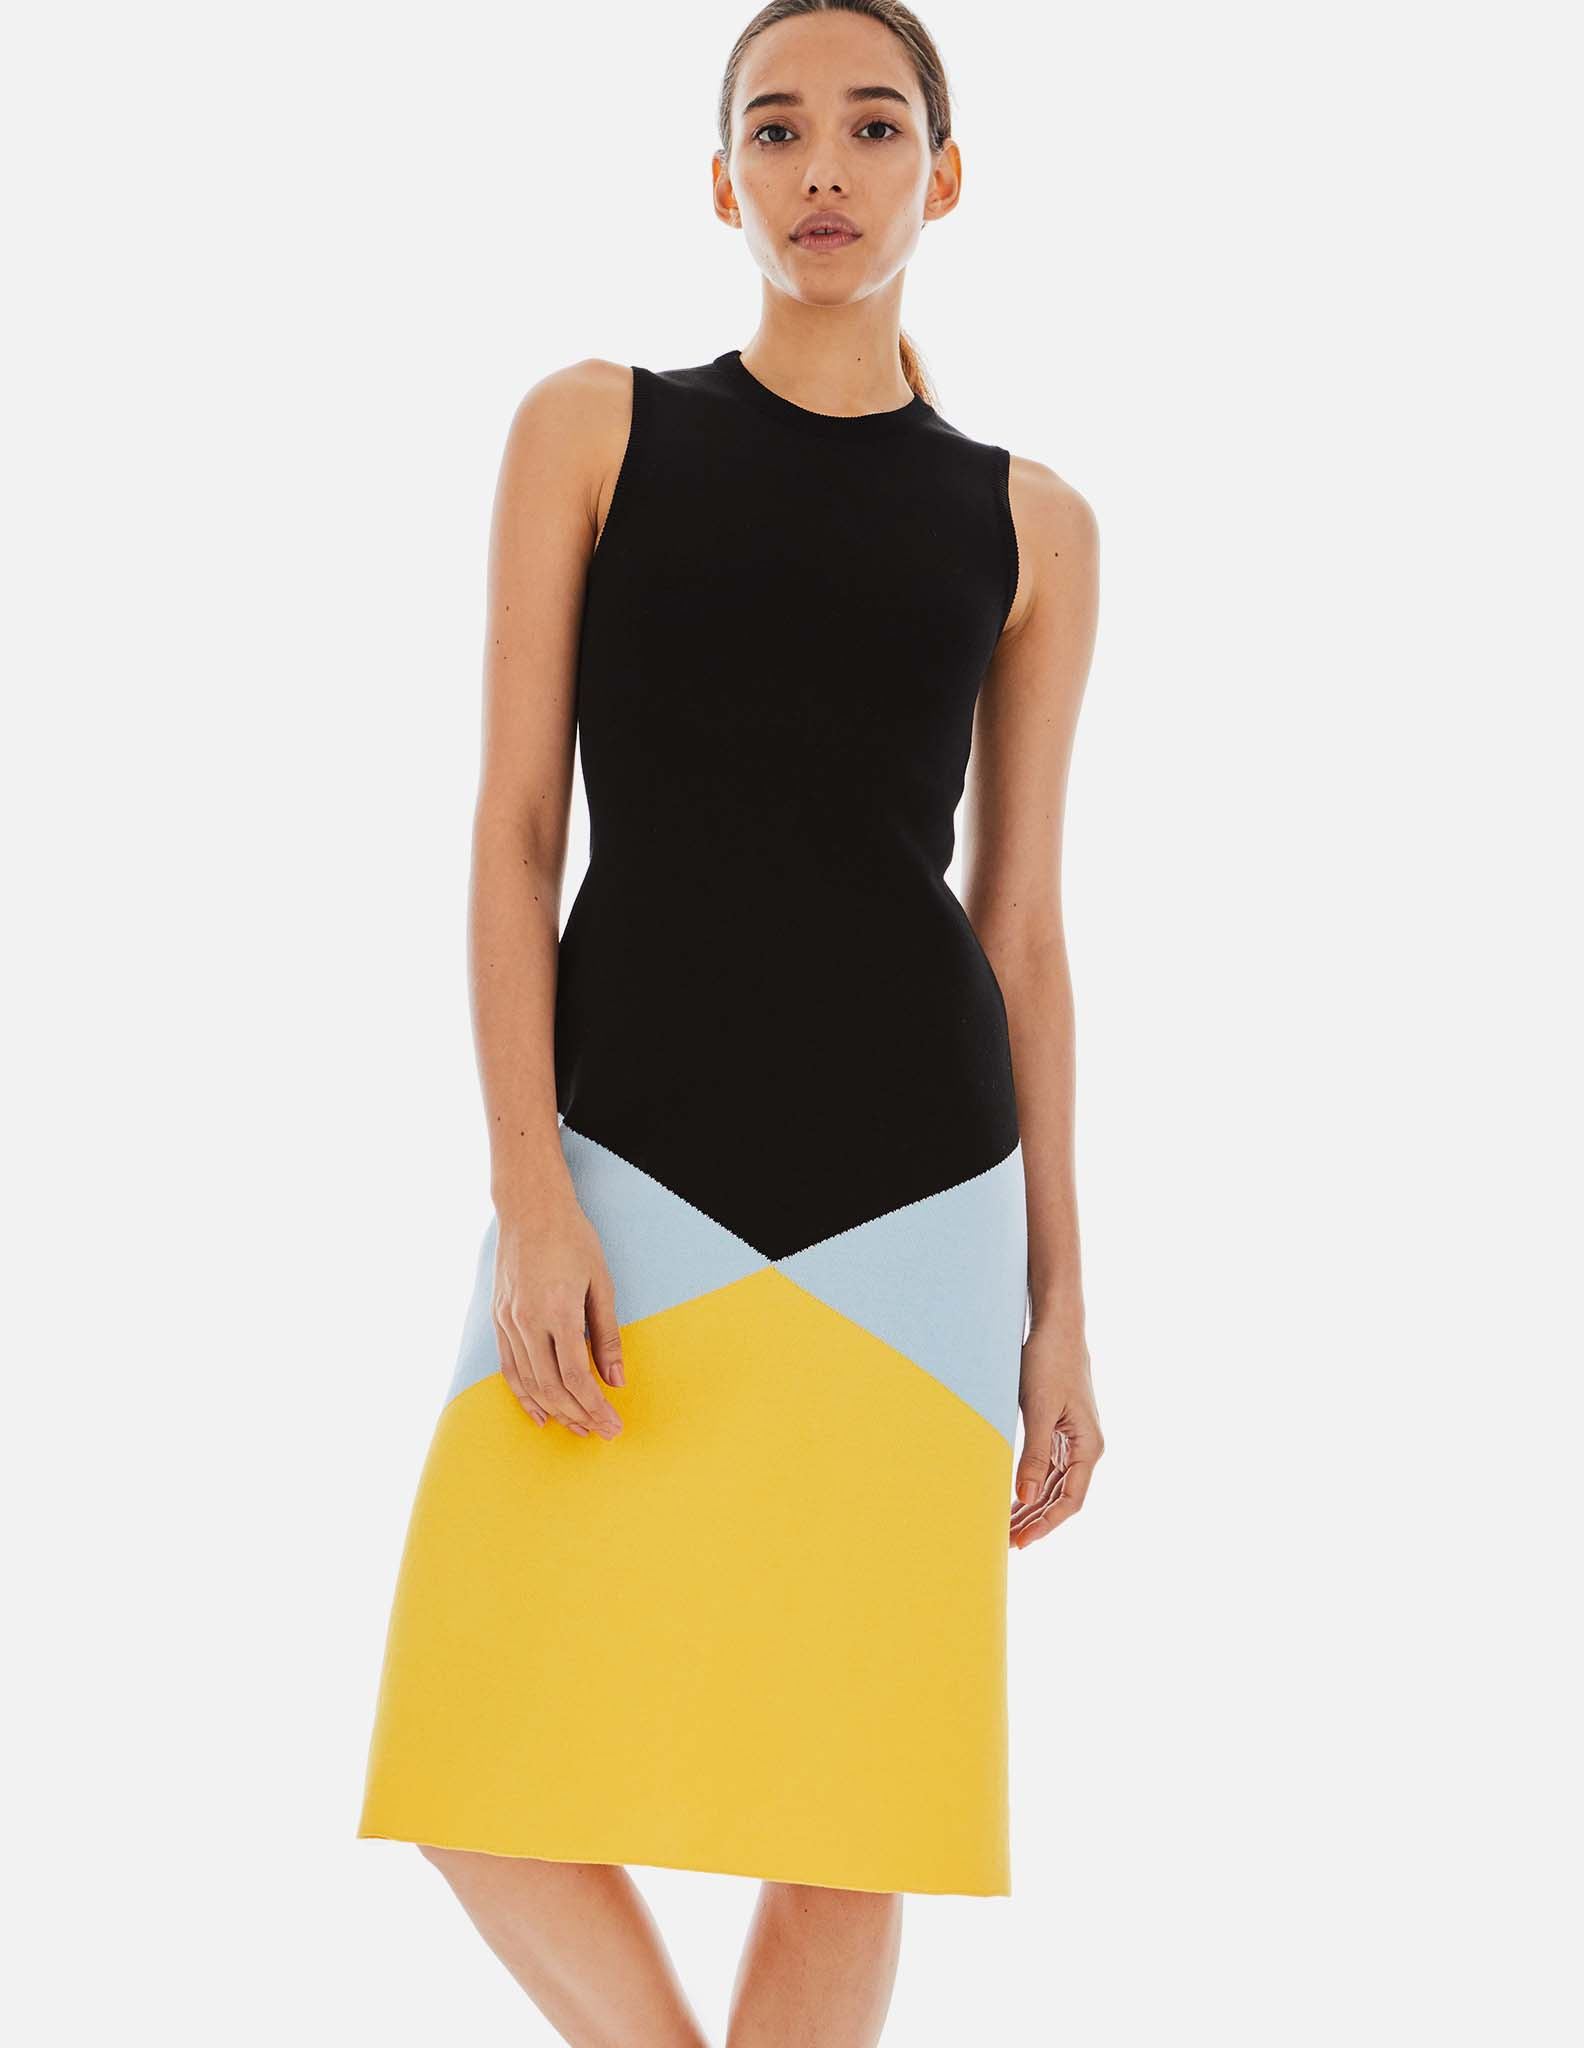 Novis - Taconic Sleeveless Dress